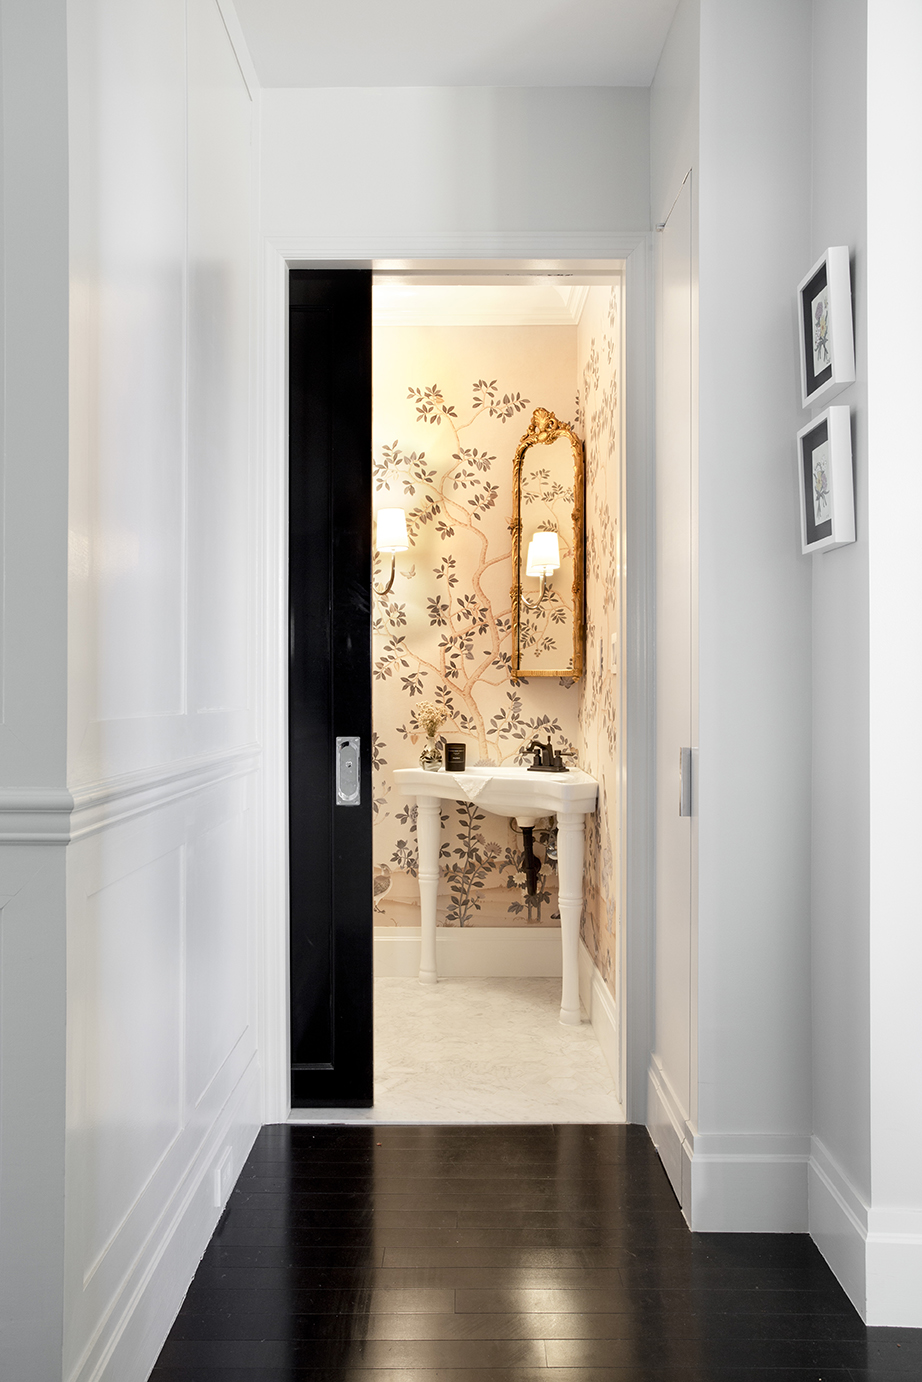 WHIW78-PAMELADAILEYDESIGN_POWDER-ROOM-BLACK-GLOSSY-DOORS-BLACK-FLOORS.jpg